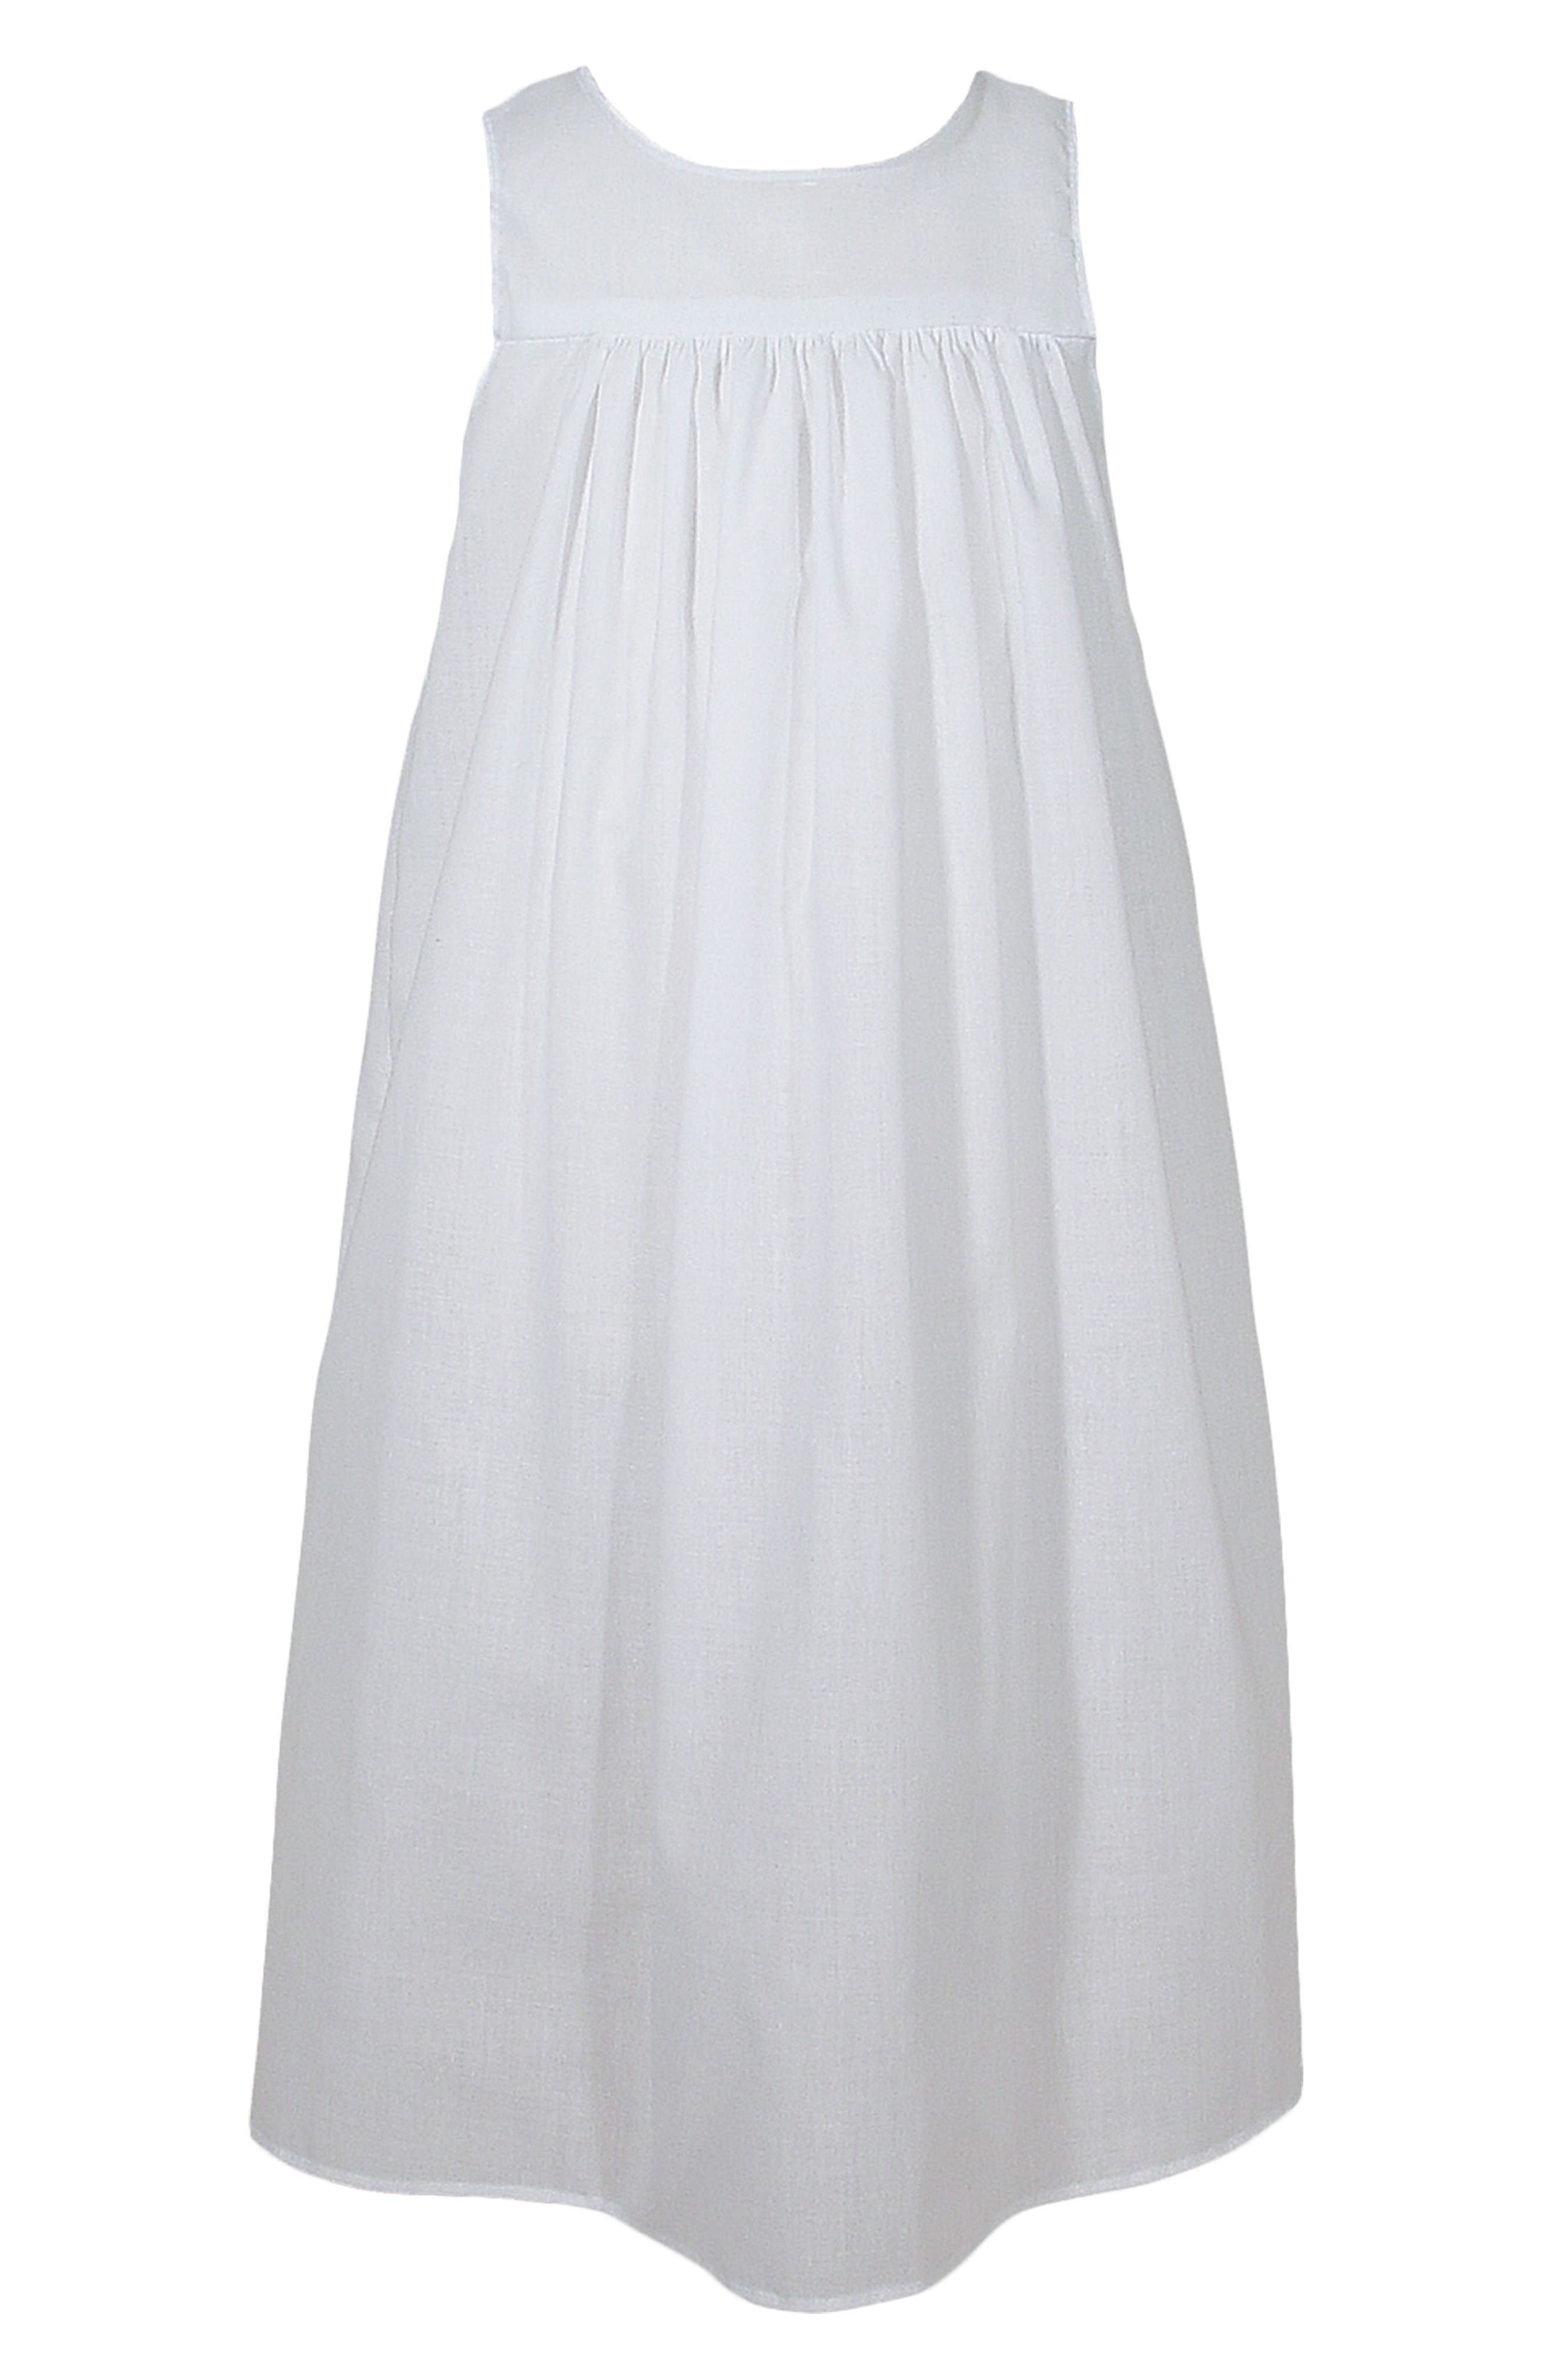 LITTLE THINGS MEAN A LOT Christening Gown Slip, Main, color, WHITE